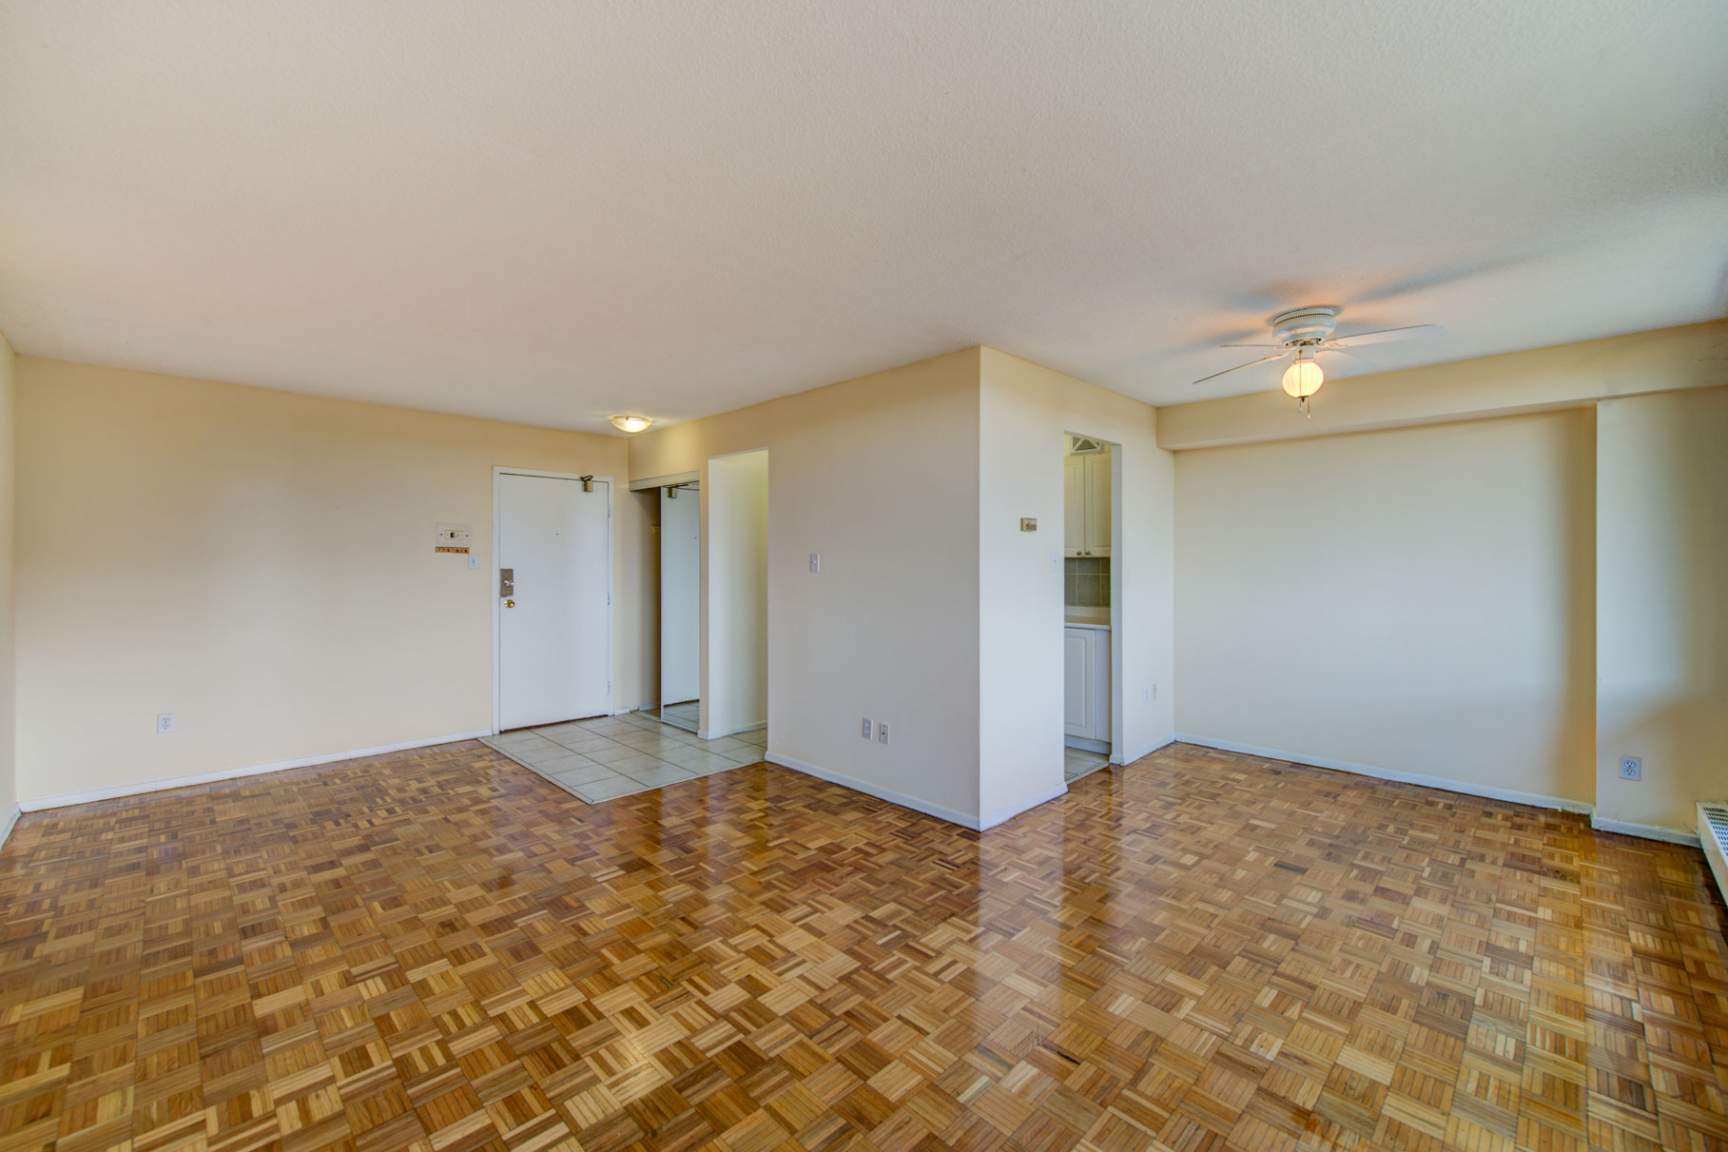 1 bedroom Apartments for rent in Mississauga at Royal Tower - Photo 10 - RentersPages – L138874